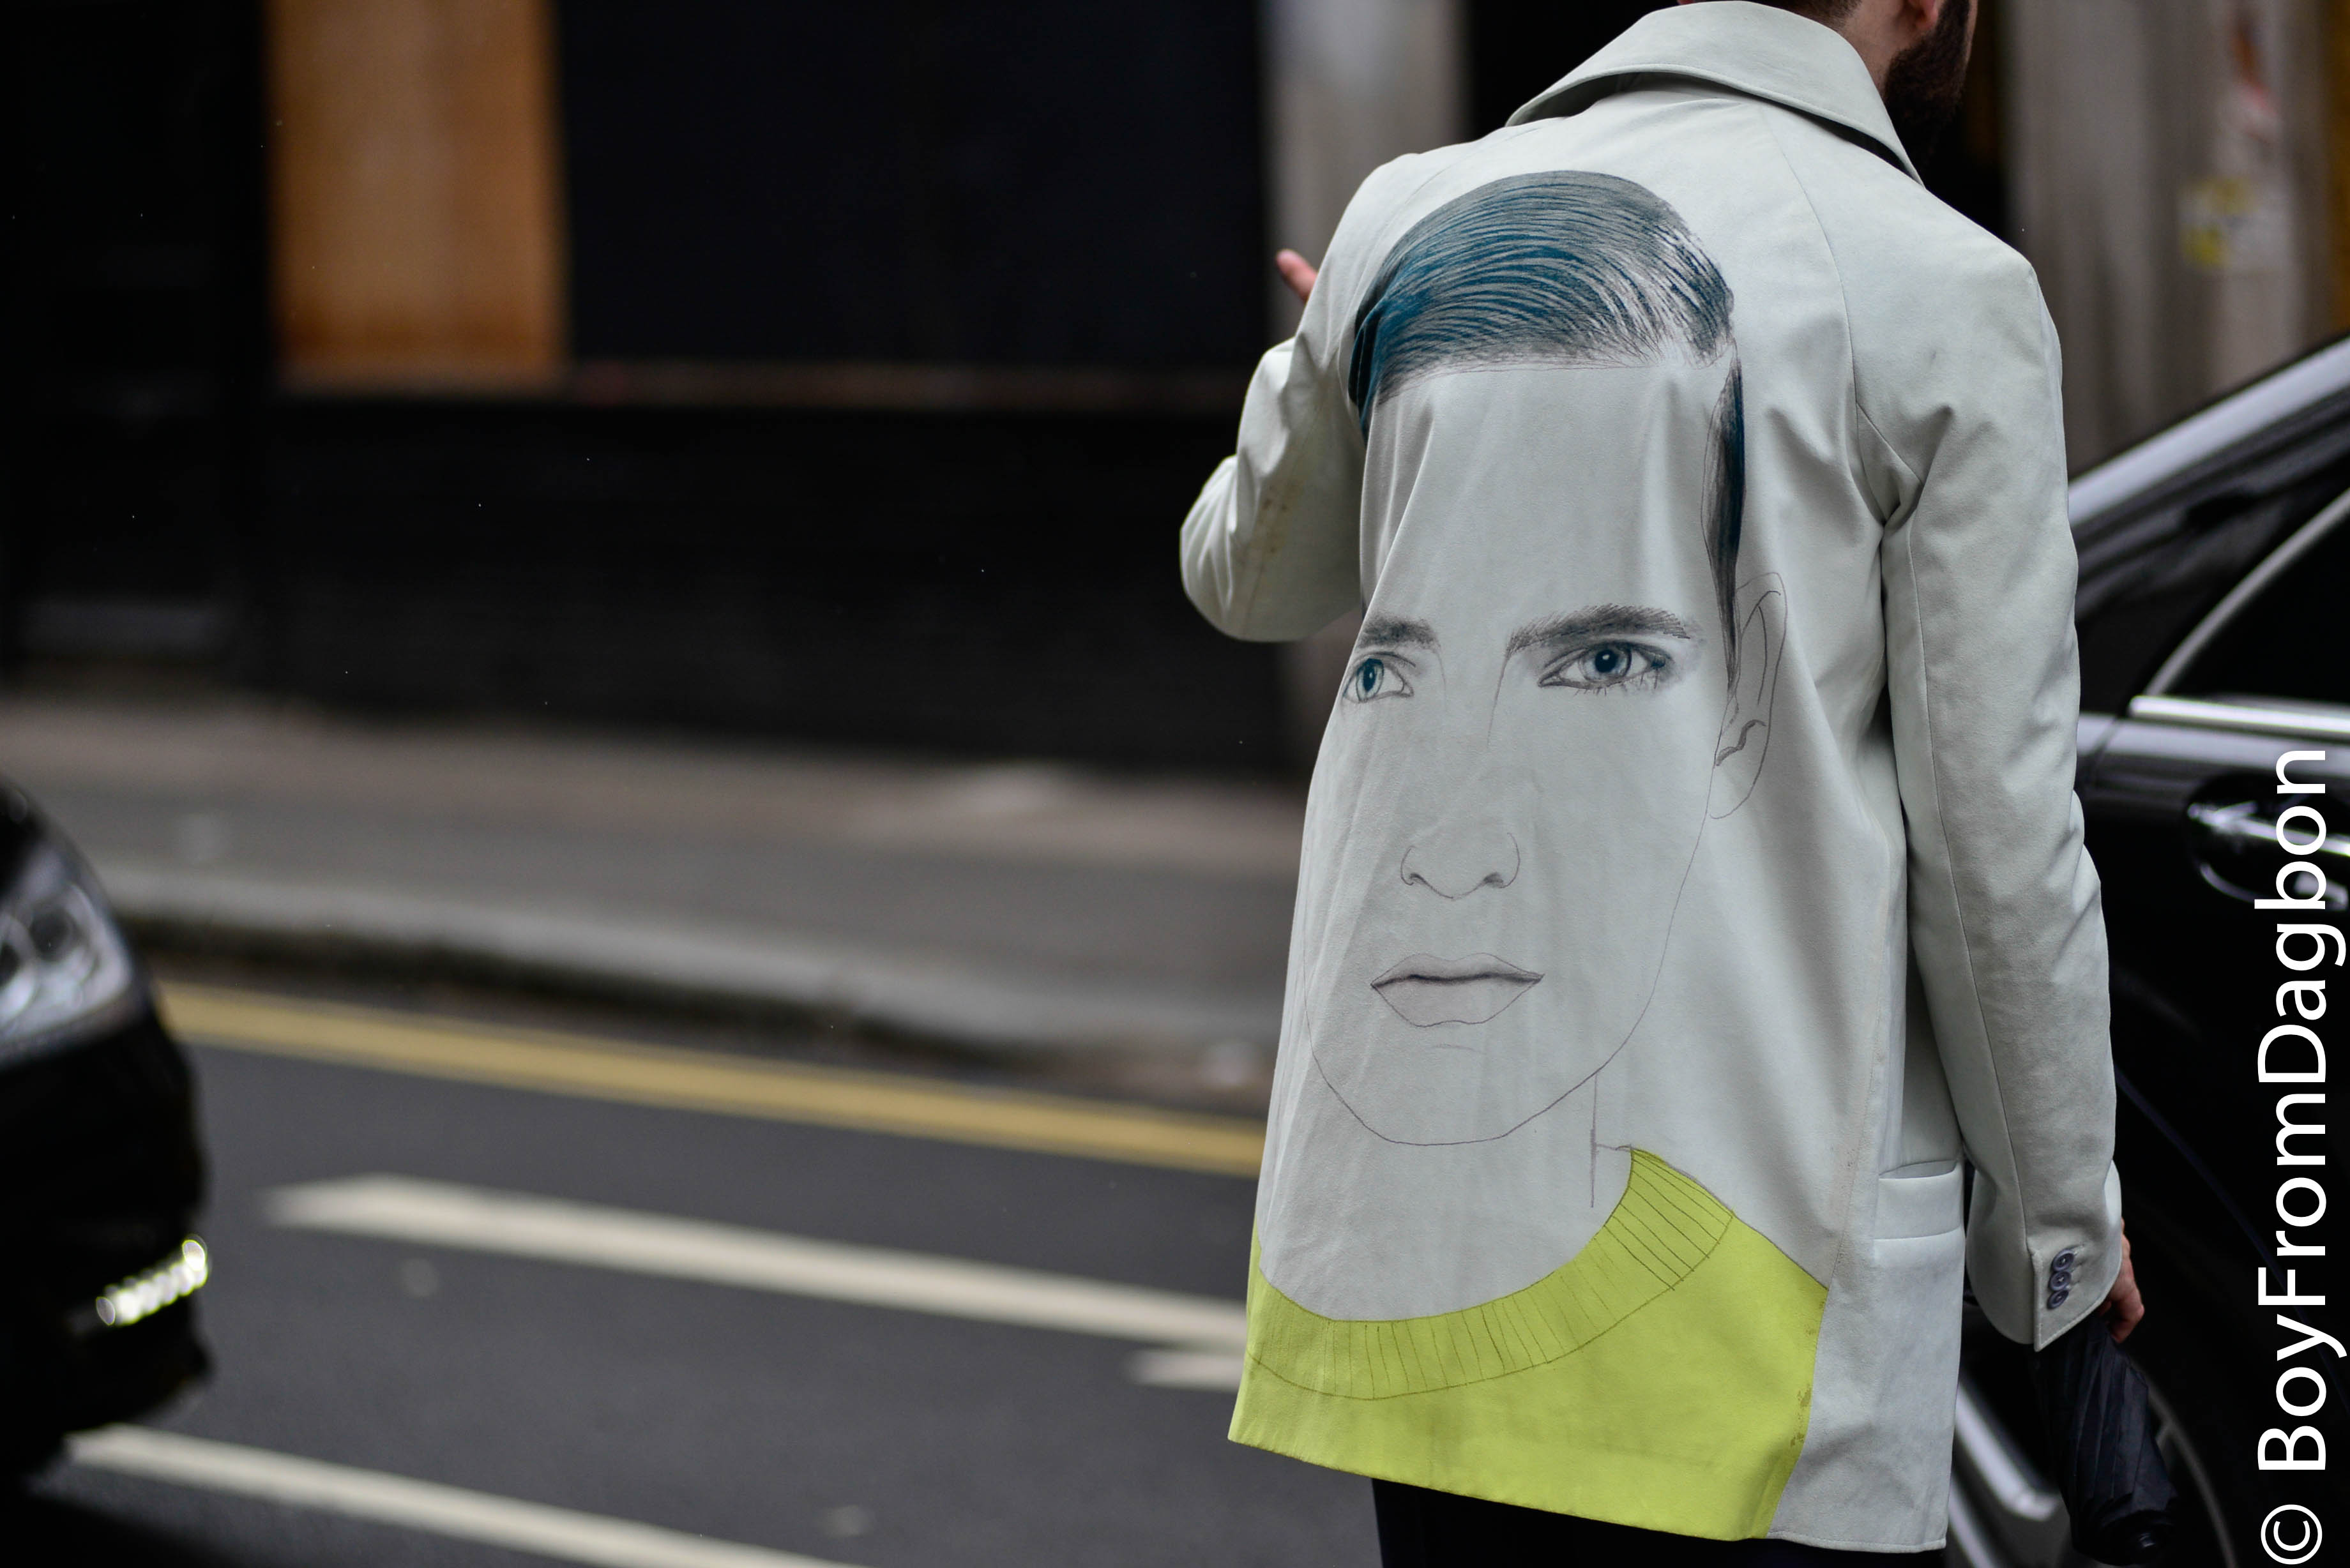 Jacket with Painting